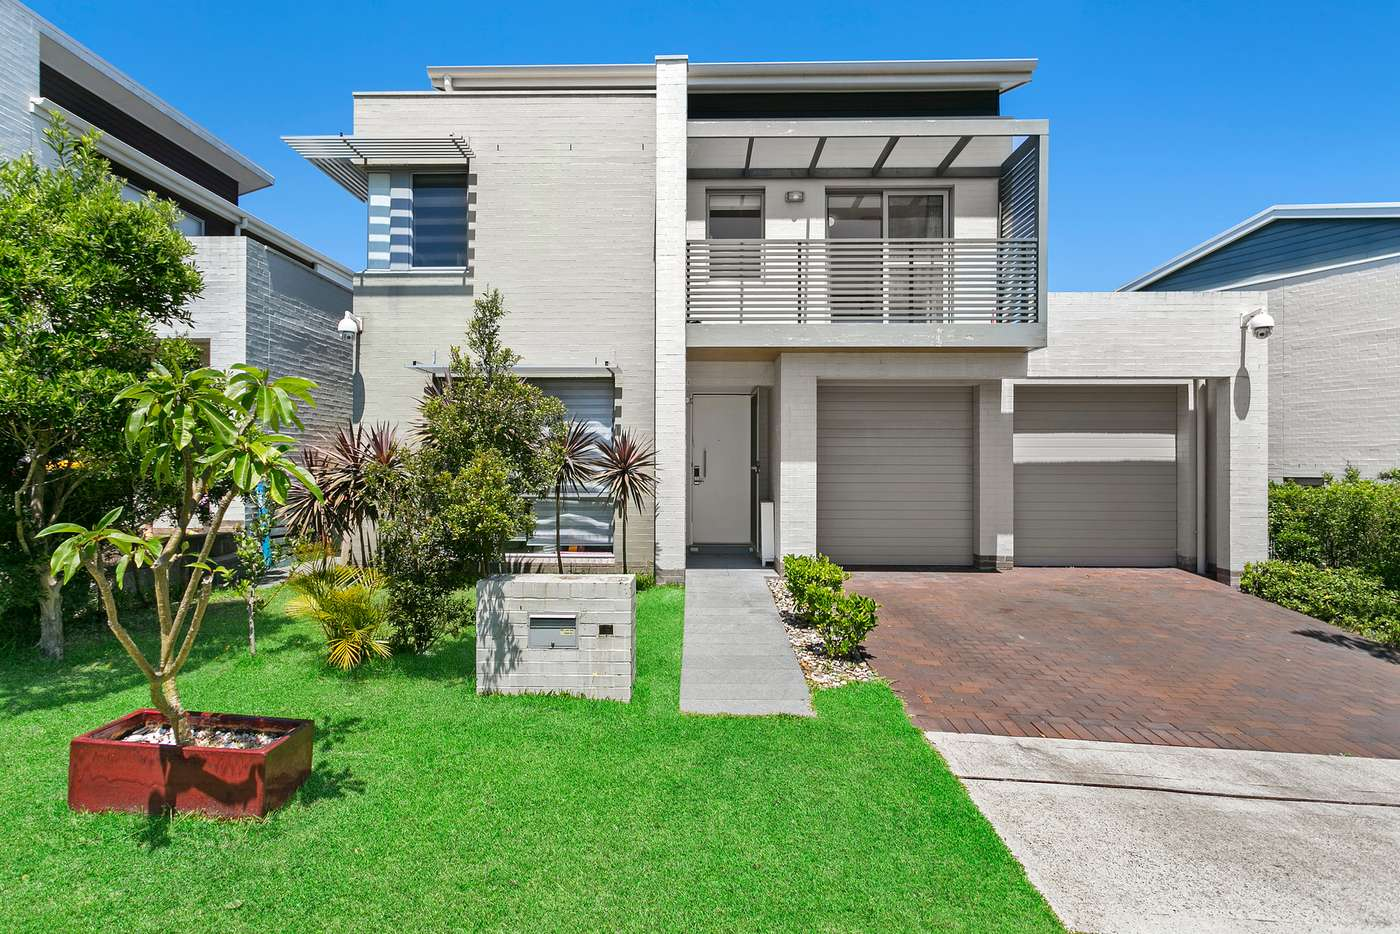 Main view of Homely house listing, 24 Fairsky Street, South Coogee NSW 2034